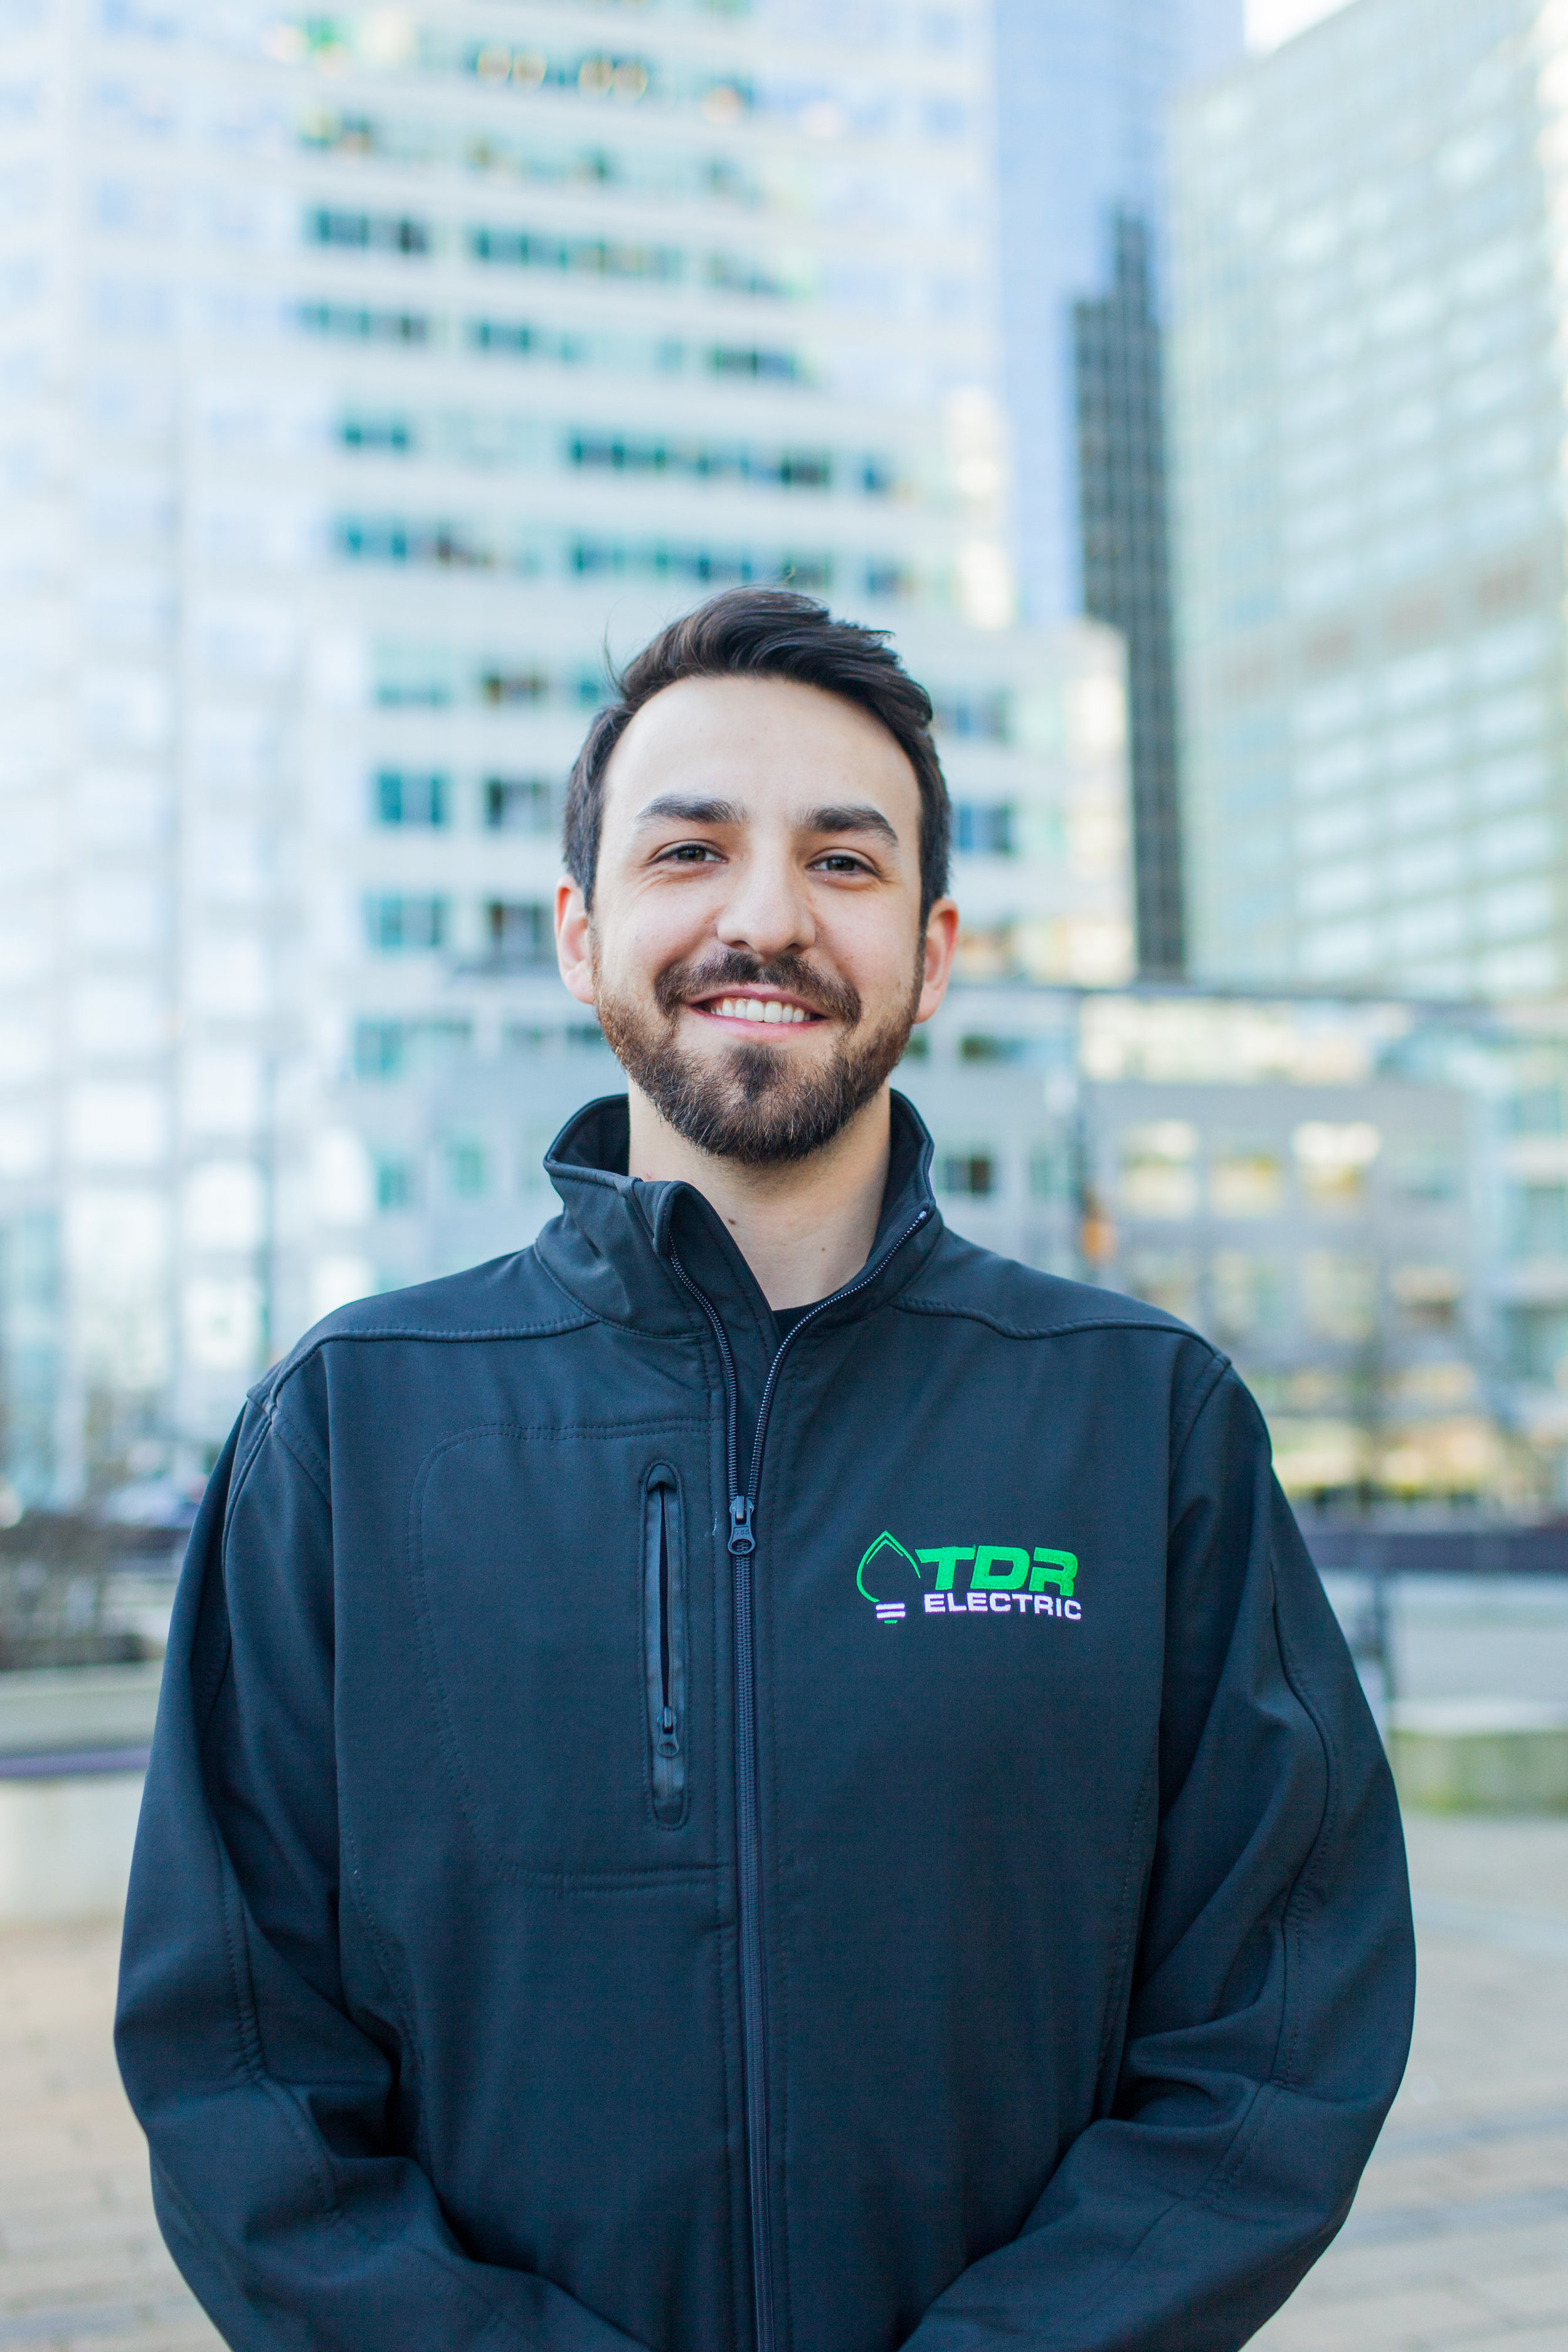 - Liam is one of our Project Managers at TDR Electric and is also a certified Journeyman. He completed his apprenticeship at BCIT in Vancouver, BC and offers 7 years of electrical experience, leadership and communication skills.Liam's ability to make decisions quickly and efficiently allows him to work on a mixture of projects including residential, commercial and specialty work. Liam is always looking for a challenge to further better his knowledge in the trade and stays current in the field which allows him to provide the best service to clients and TDR. He is currently taking courses to become a Class B Field Safety Officer. Outside of work Liam enjoys spending time outdoors including playing golf, baseball and softball. He is currently in search of a dog companion.